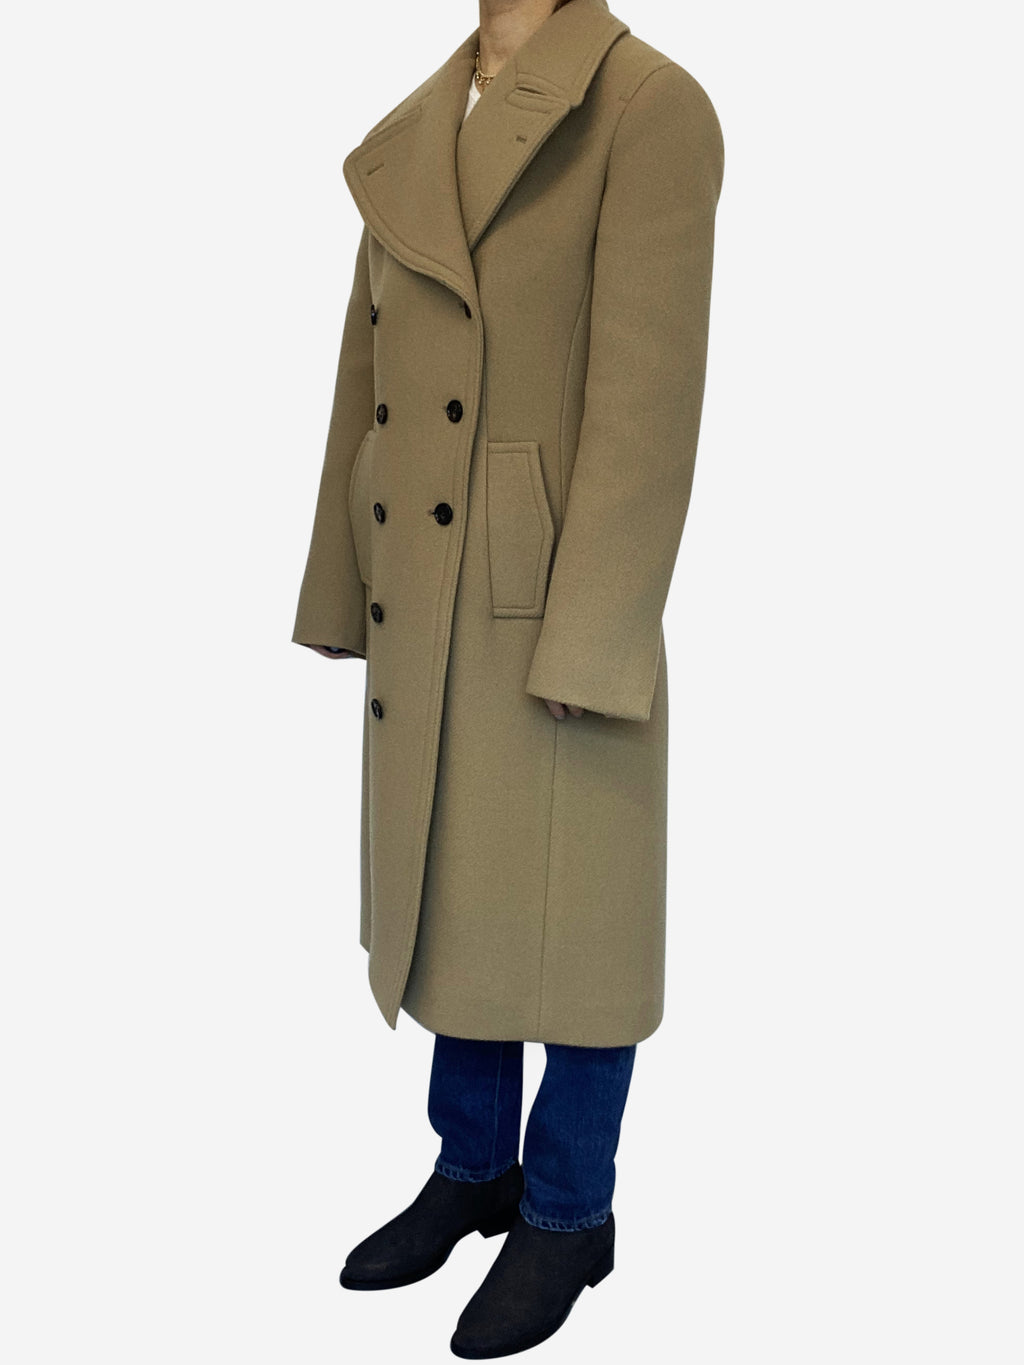 Camel double breasted wool coat - size FR 38